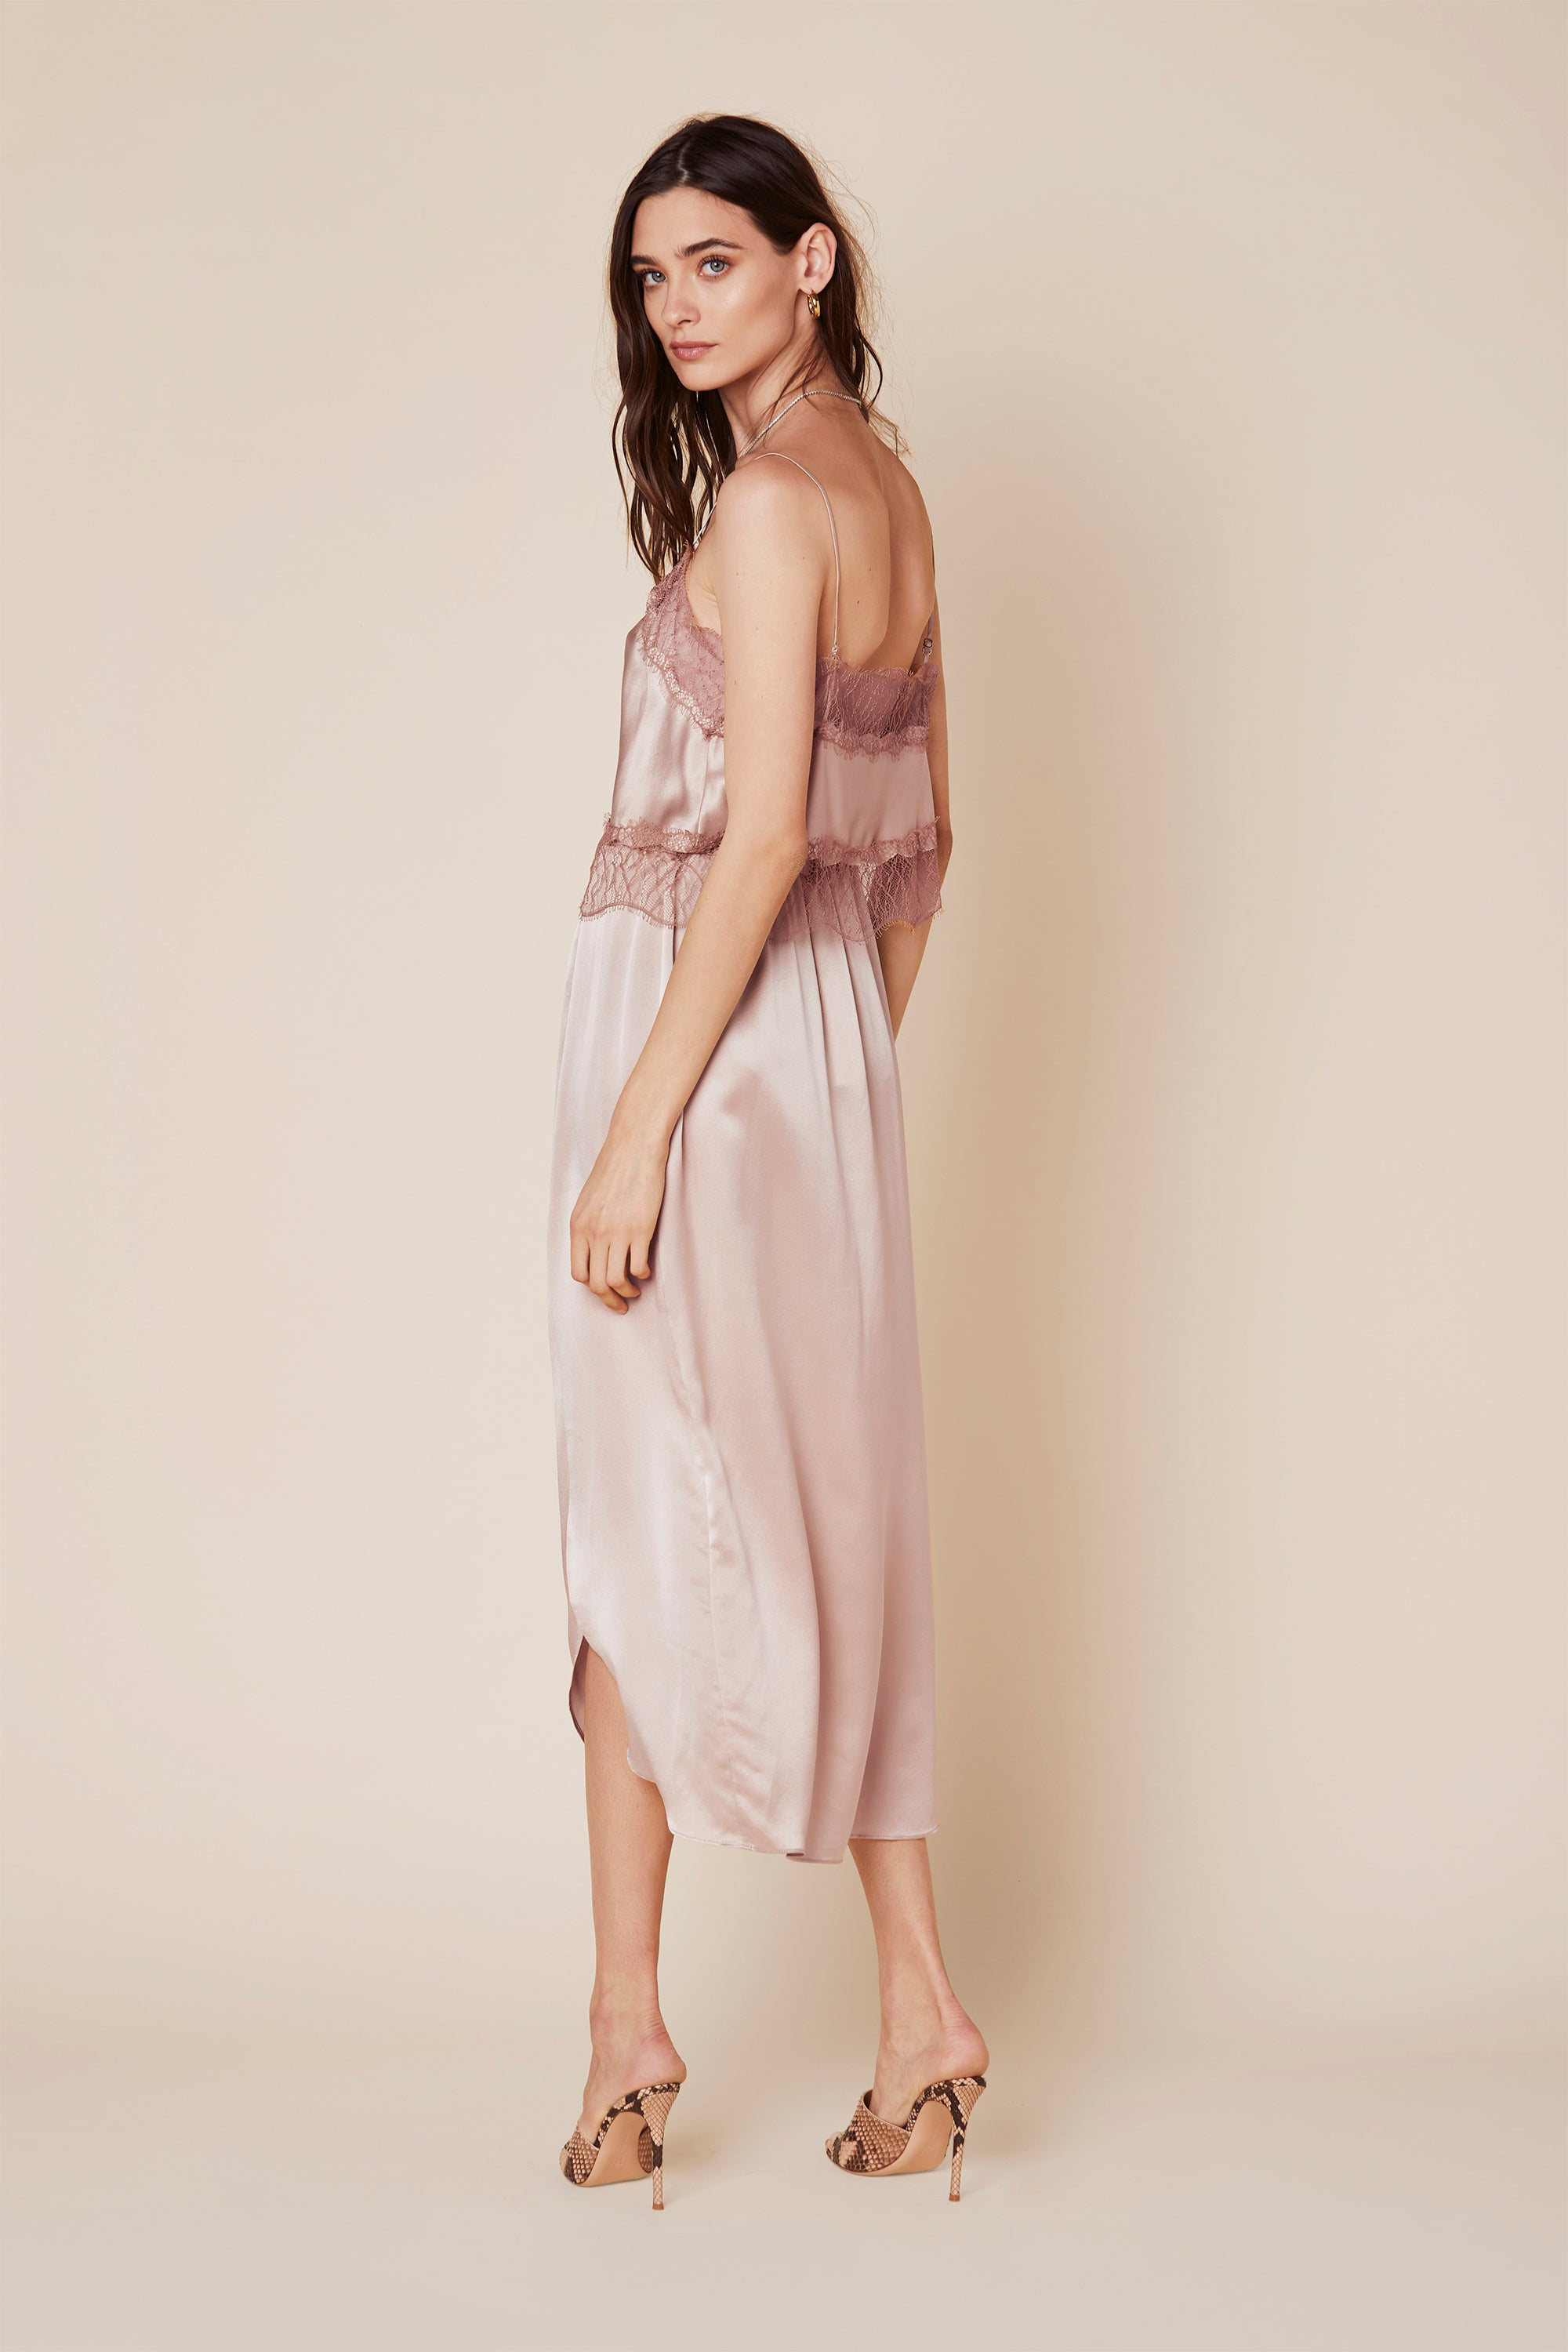 ARIEL SILK SKIRT | CHERRY BLOSSOM - Final Sale